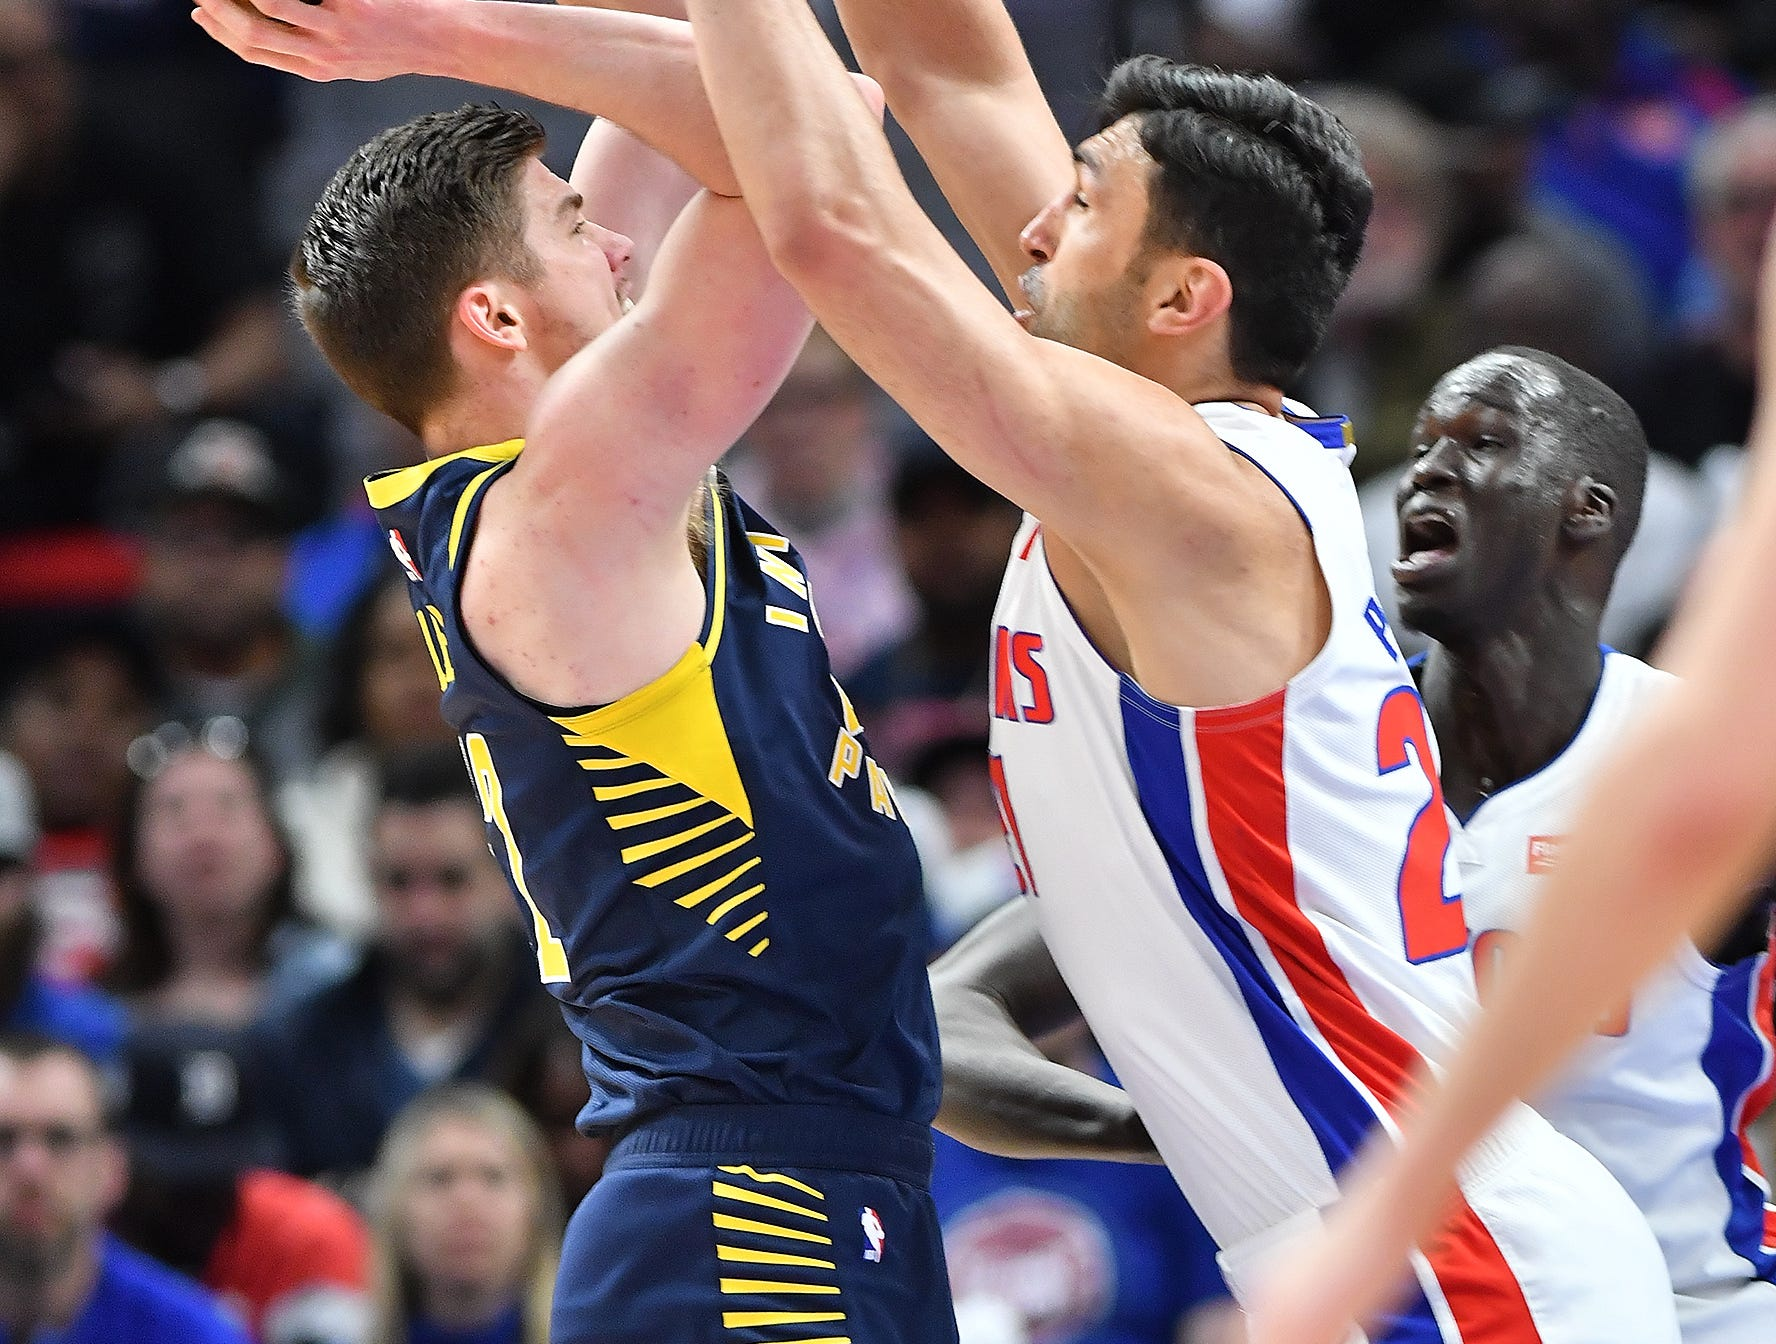 Pistons' ZaZa Pachulia defends th Pacers' TJ Leaf in the second quarter.